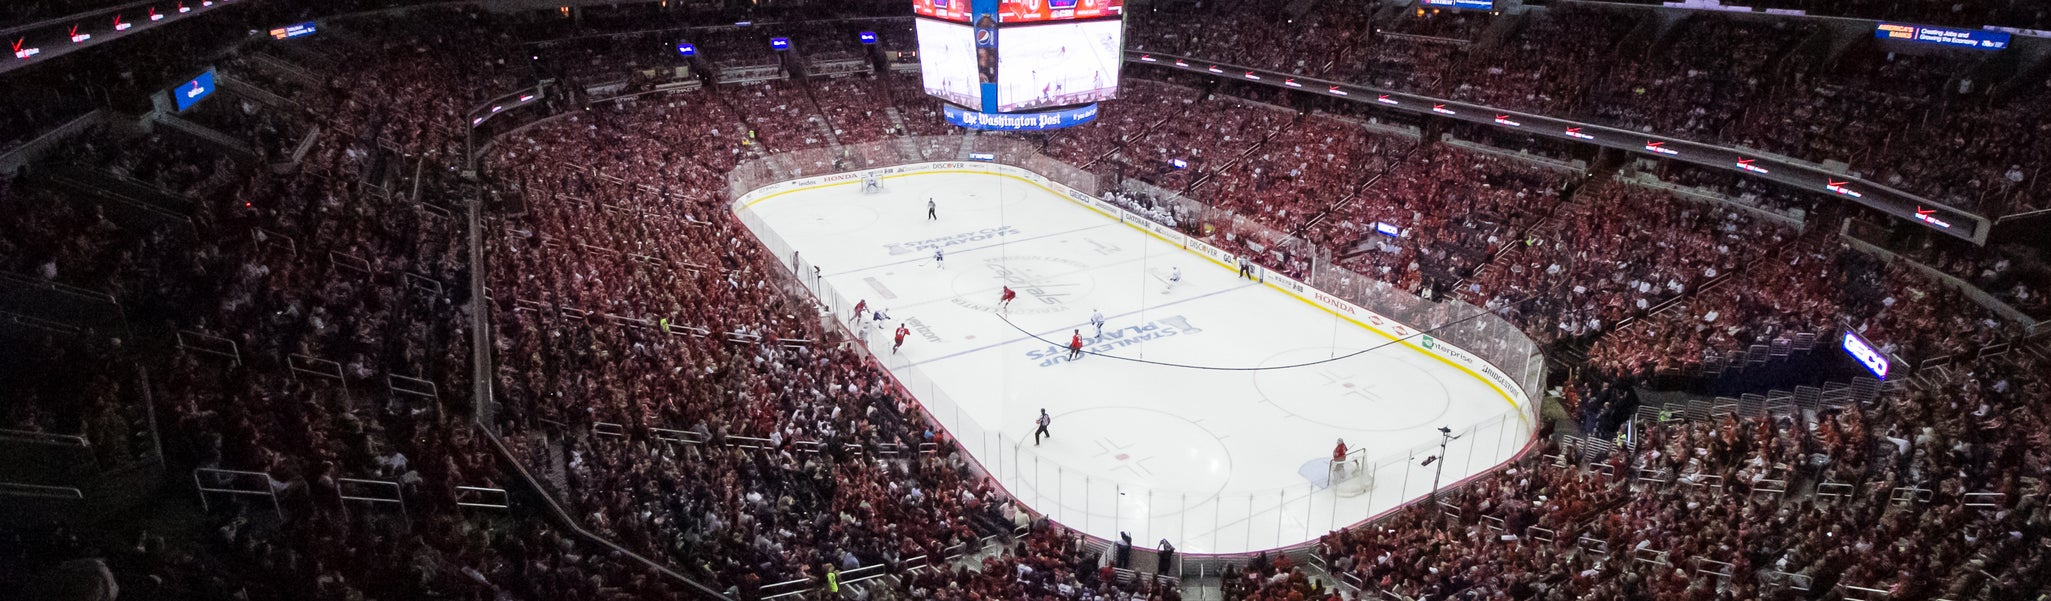 Seat view from Mezzanine End 423 at Capital One Arena